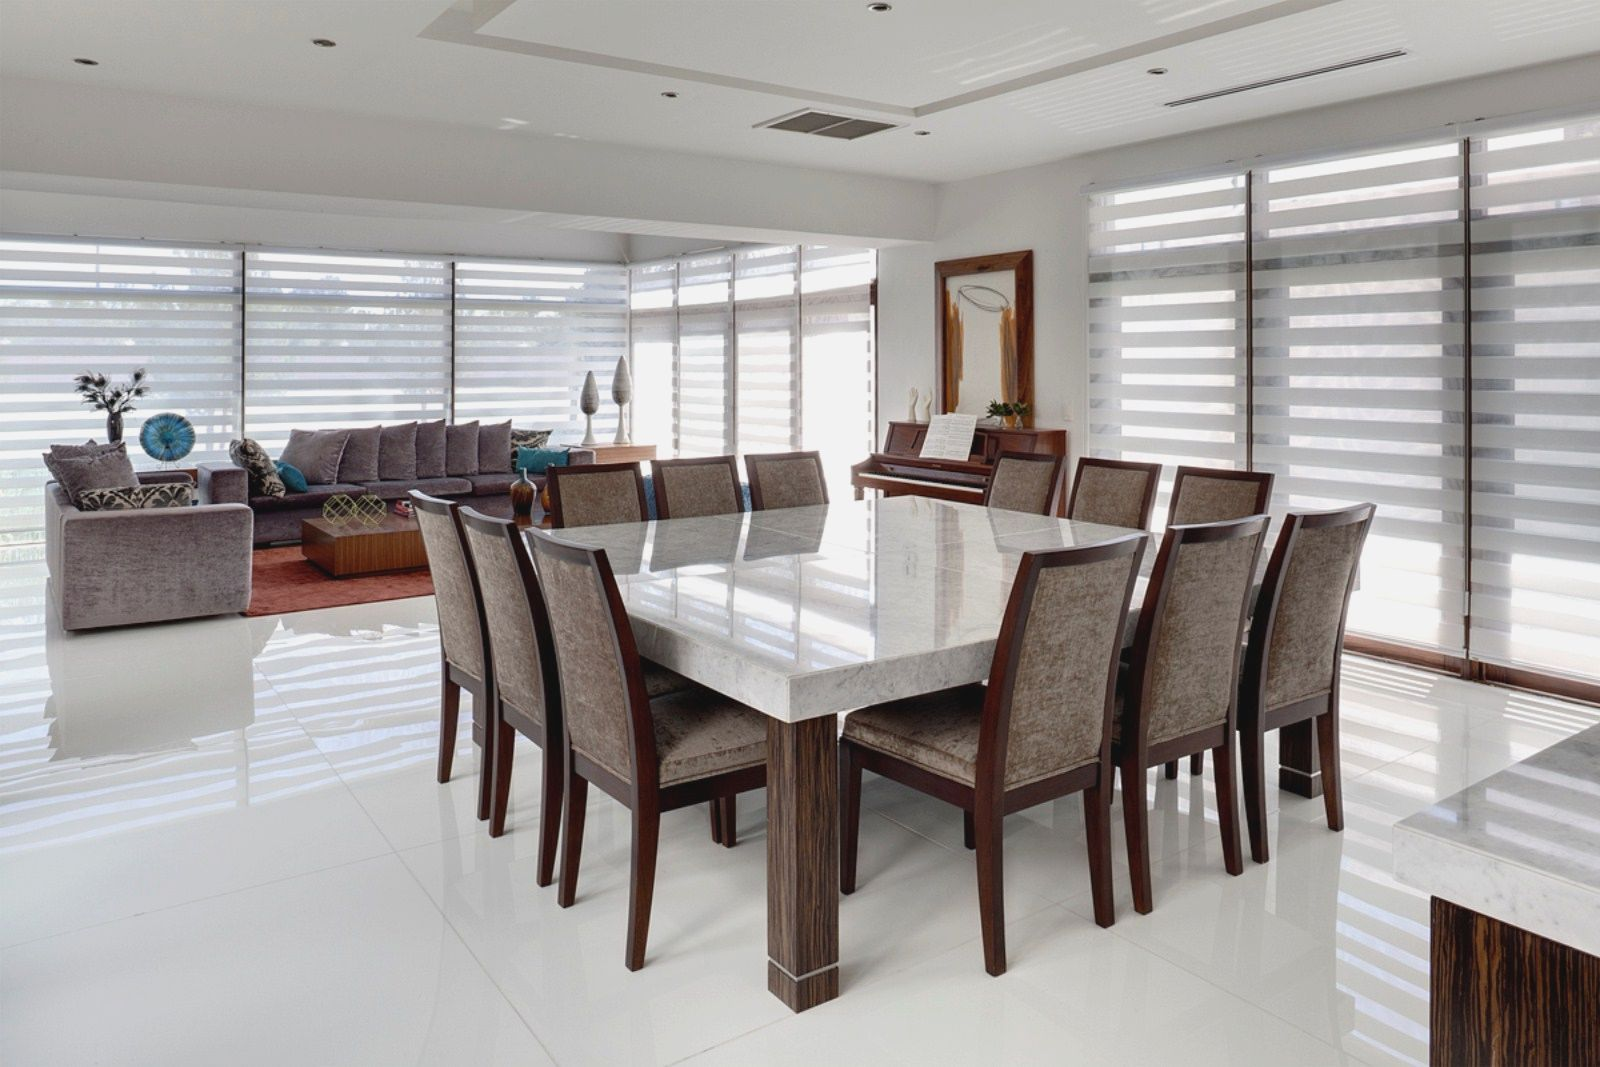 Large Square Dining Room Table Seats 12 Large Dining Room Tables Seat 12 Dining Room Large Square